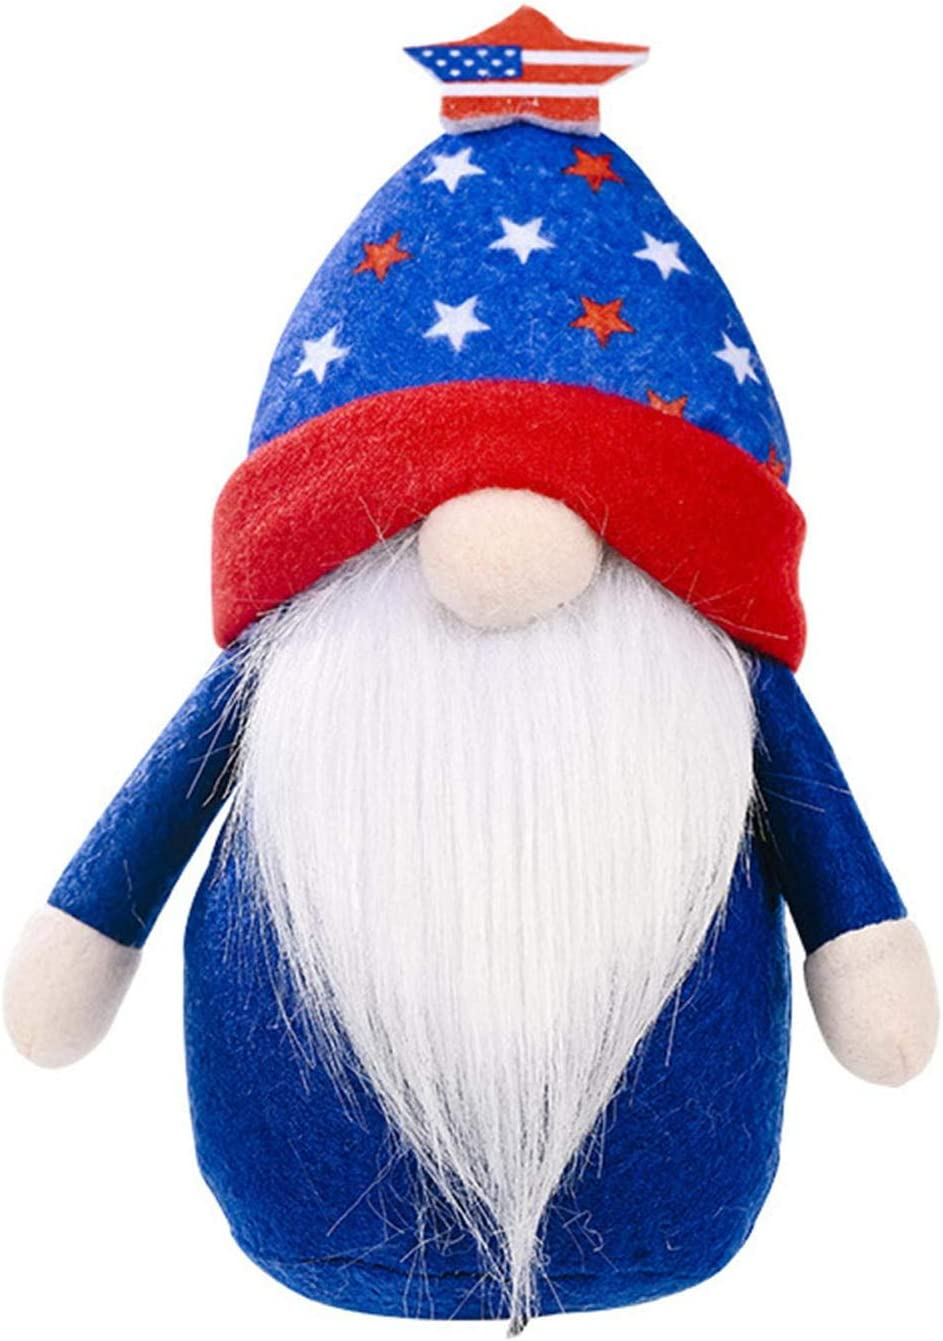 Ksruee U.S. Regular discount Independence Day Gnome outlet Toy Plush Doll Faceless Hand